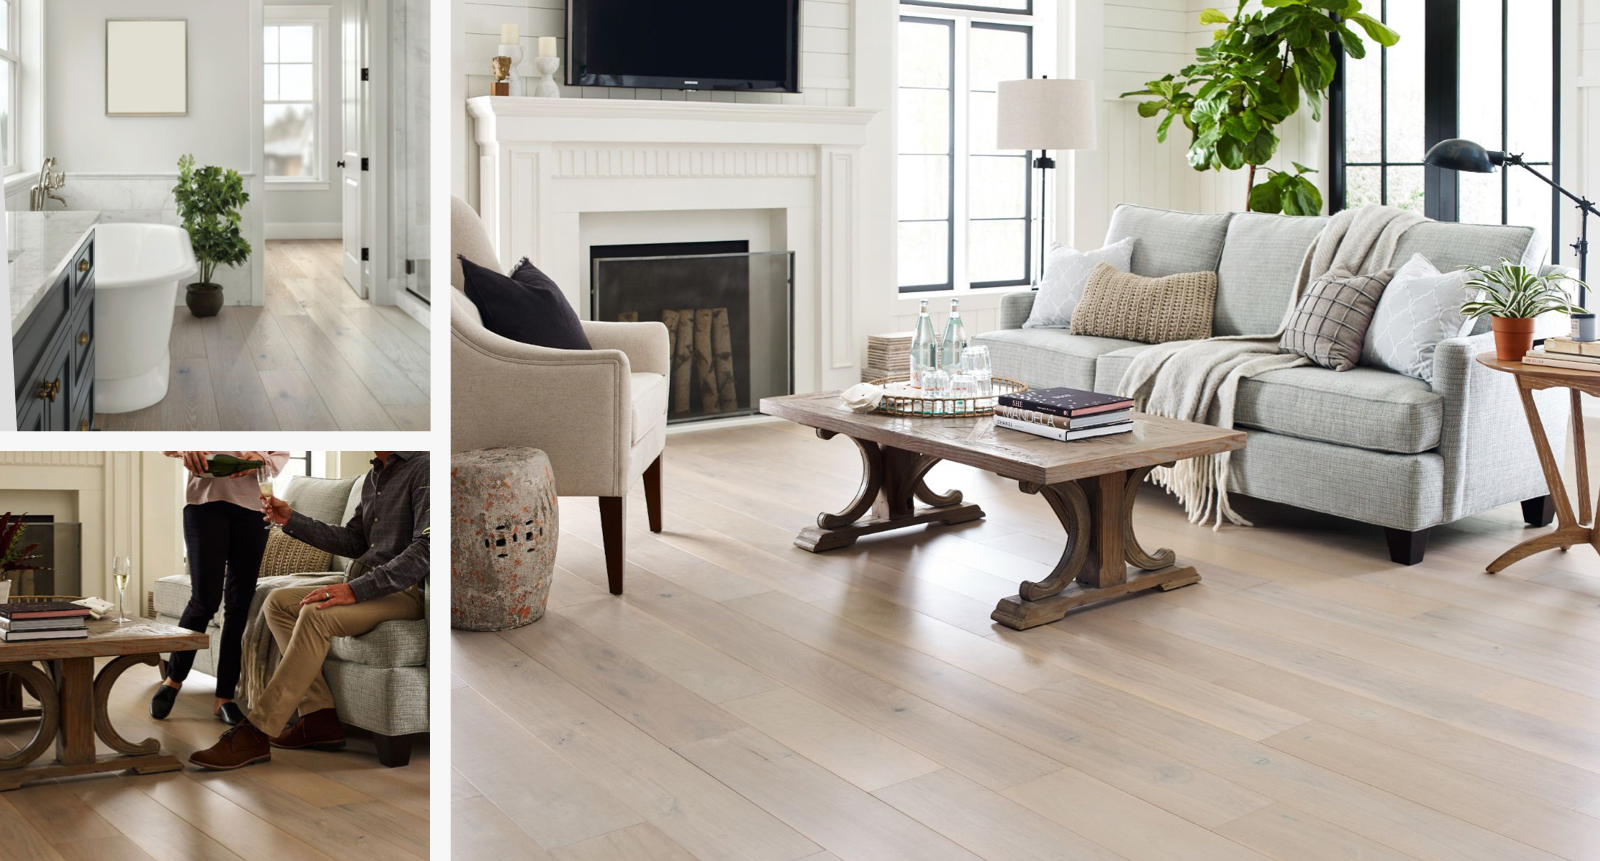 Floorte waterproof hardwood flooring for your home | Colonial Interiors